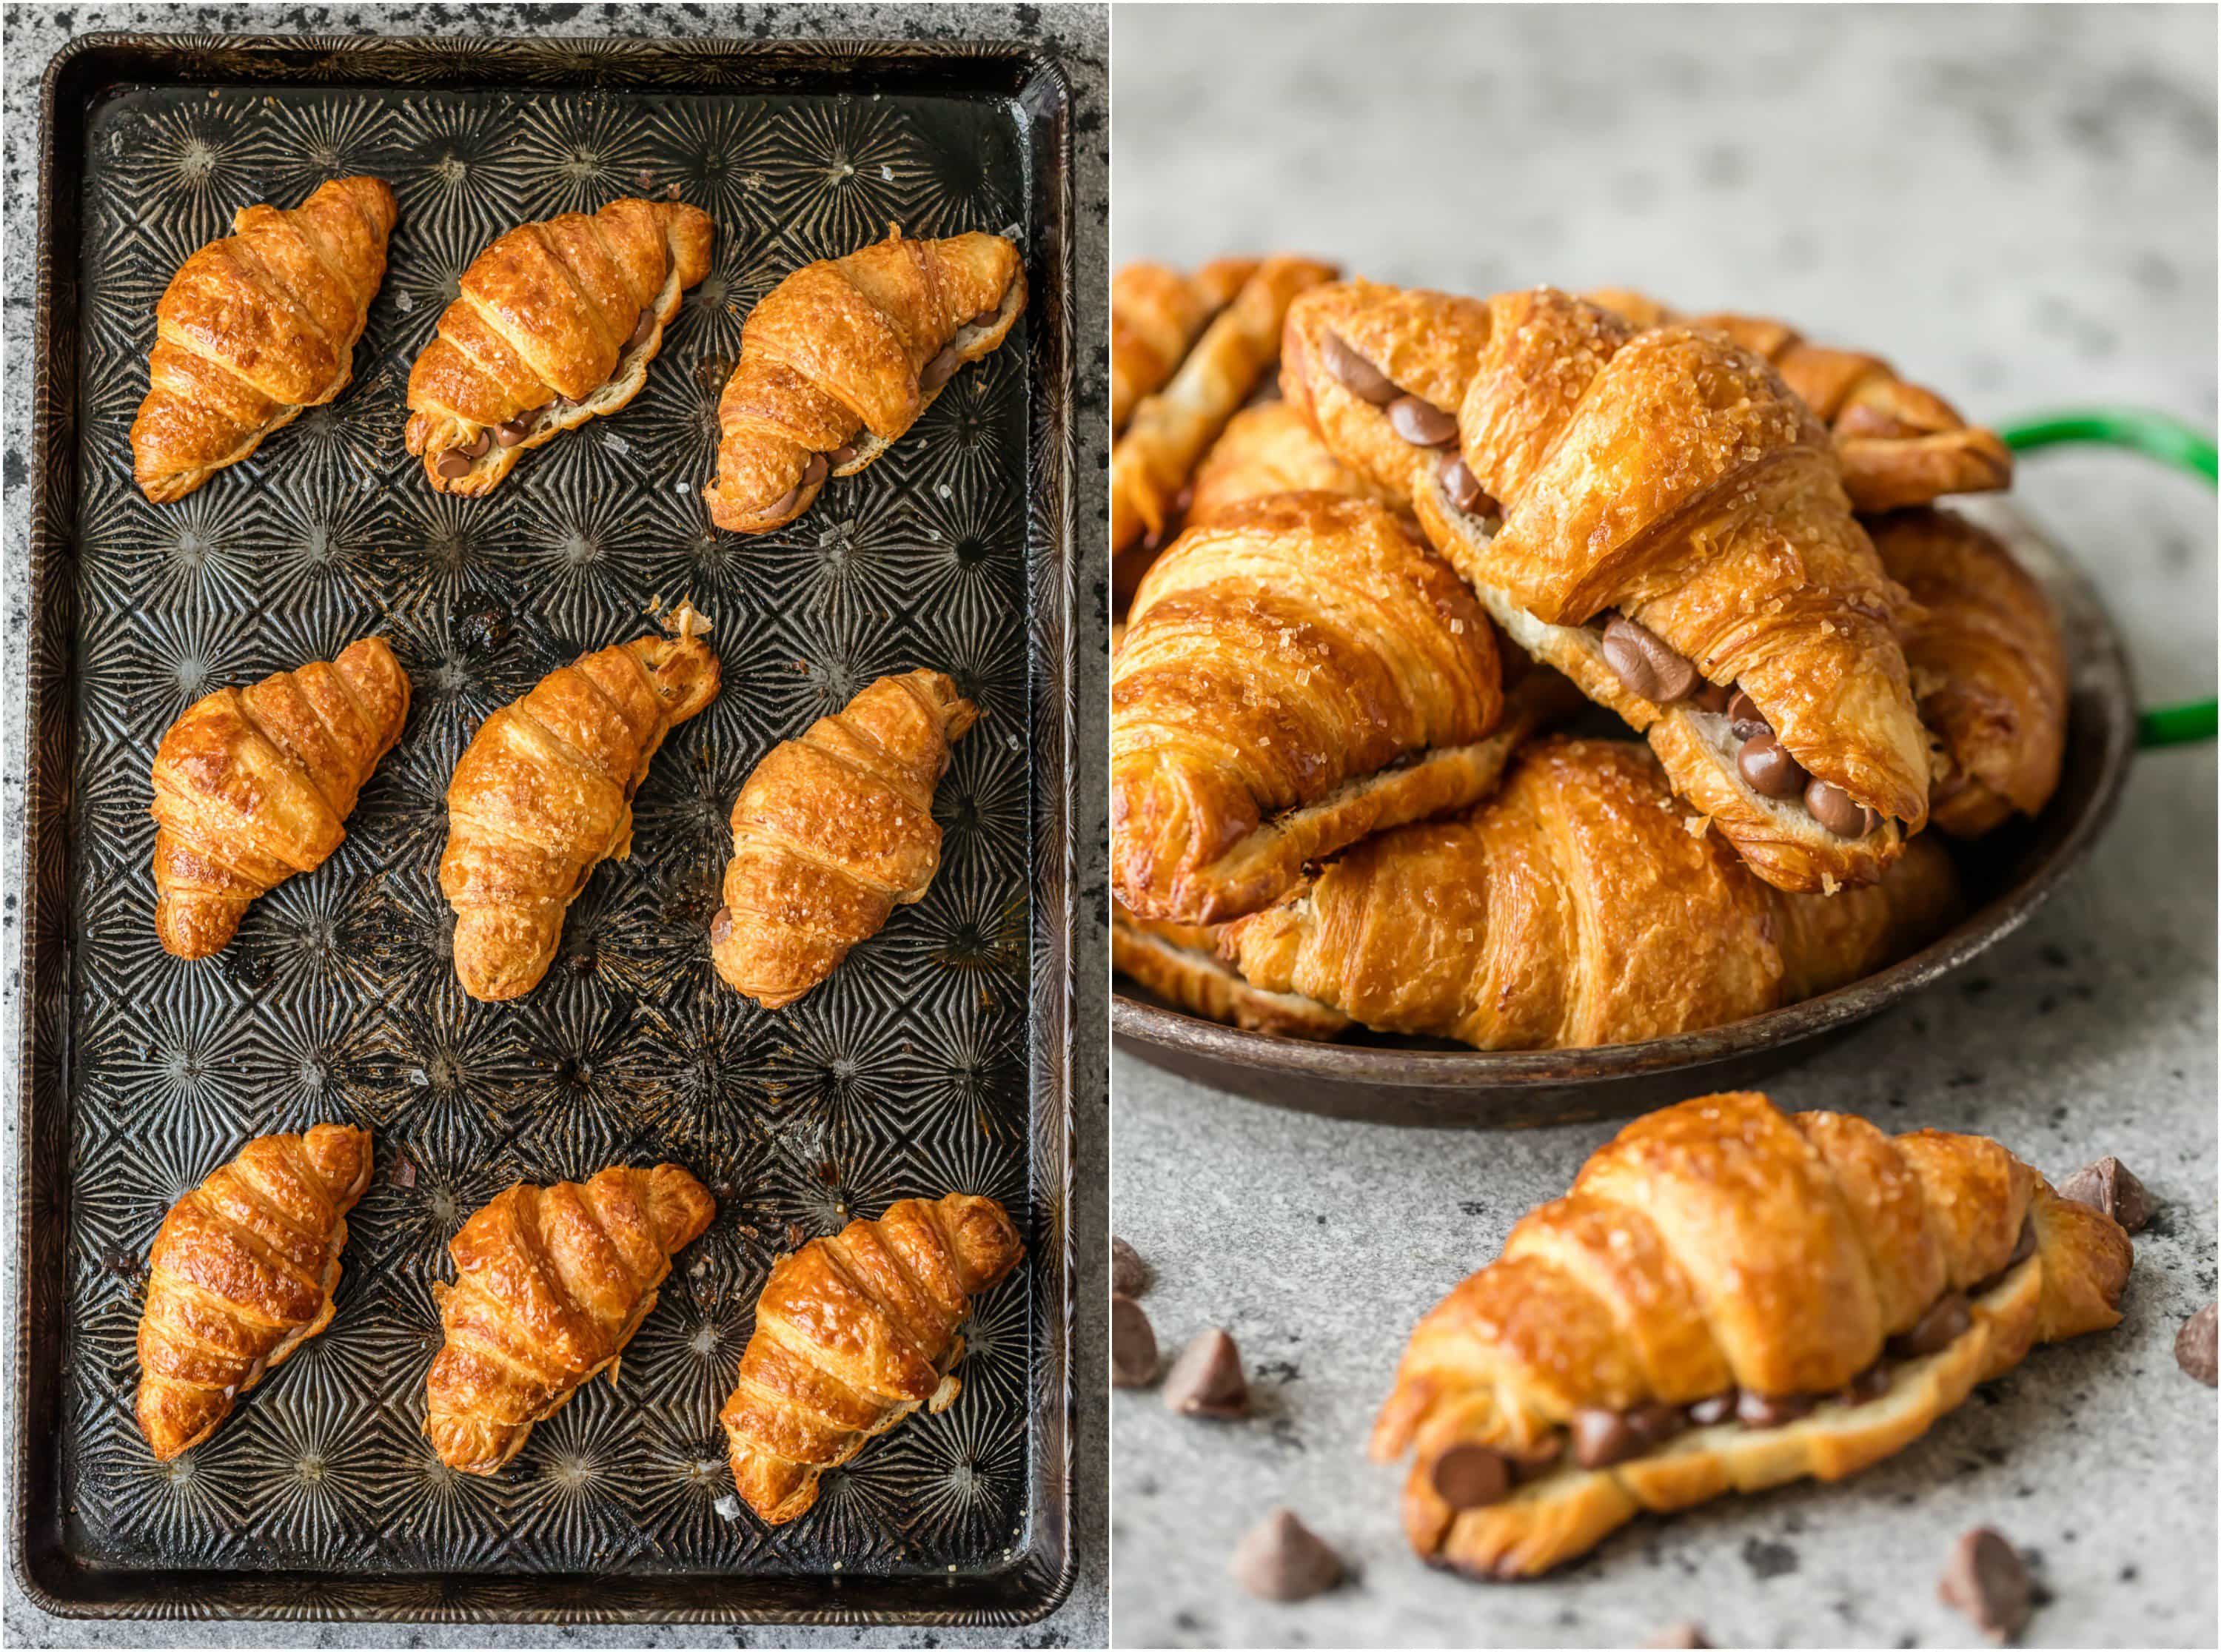 This SHEET PAN CHOCOLATE CROISSANT RECIPE is our favorite way to make a sweet breakfast for a crowd! Such a fun and easy breakfast pastry baked right in your oven.